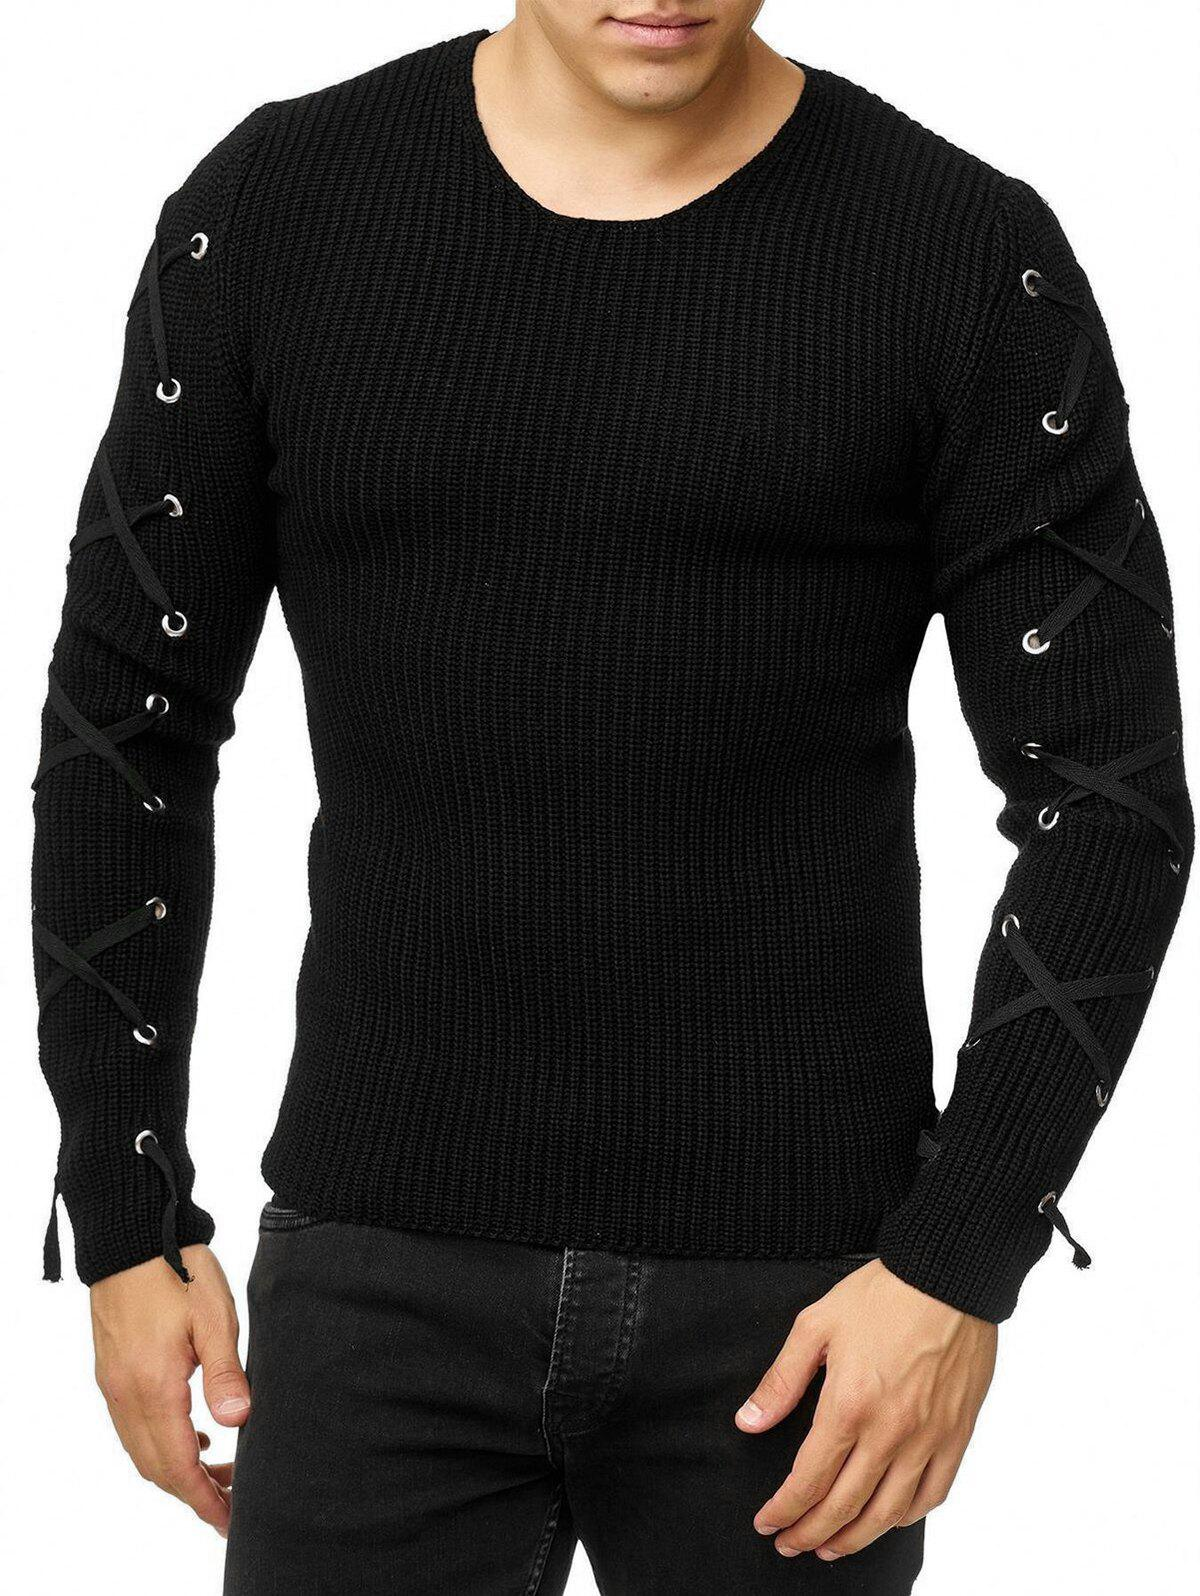 Lace Up Solid Color Pullover Sweater - BLACK L